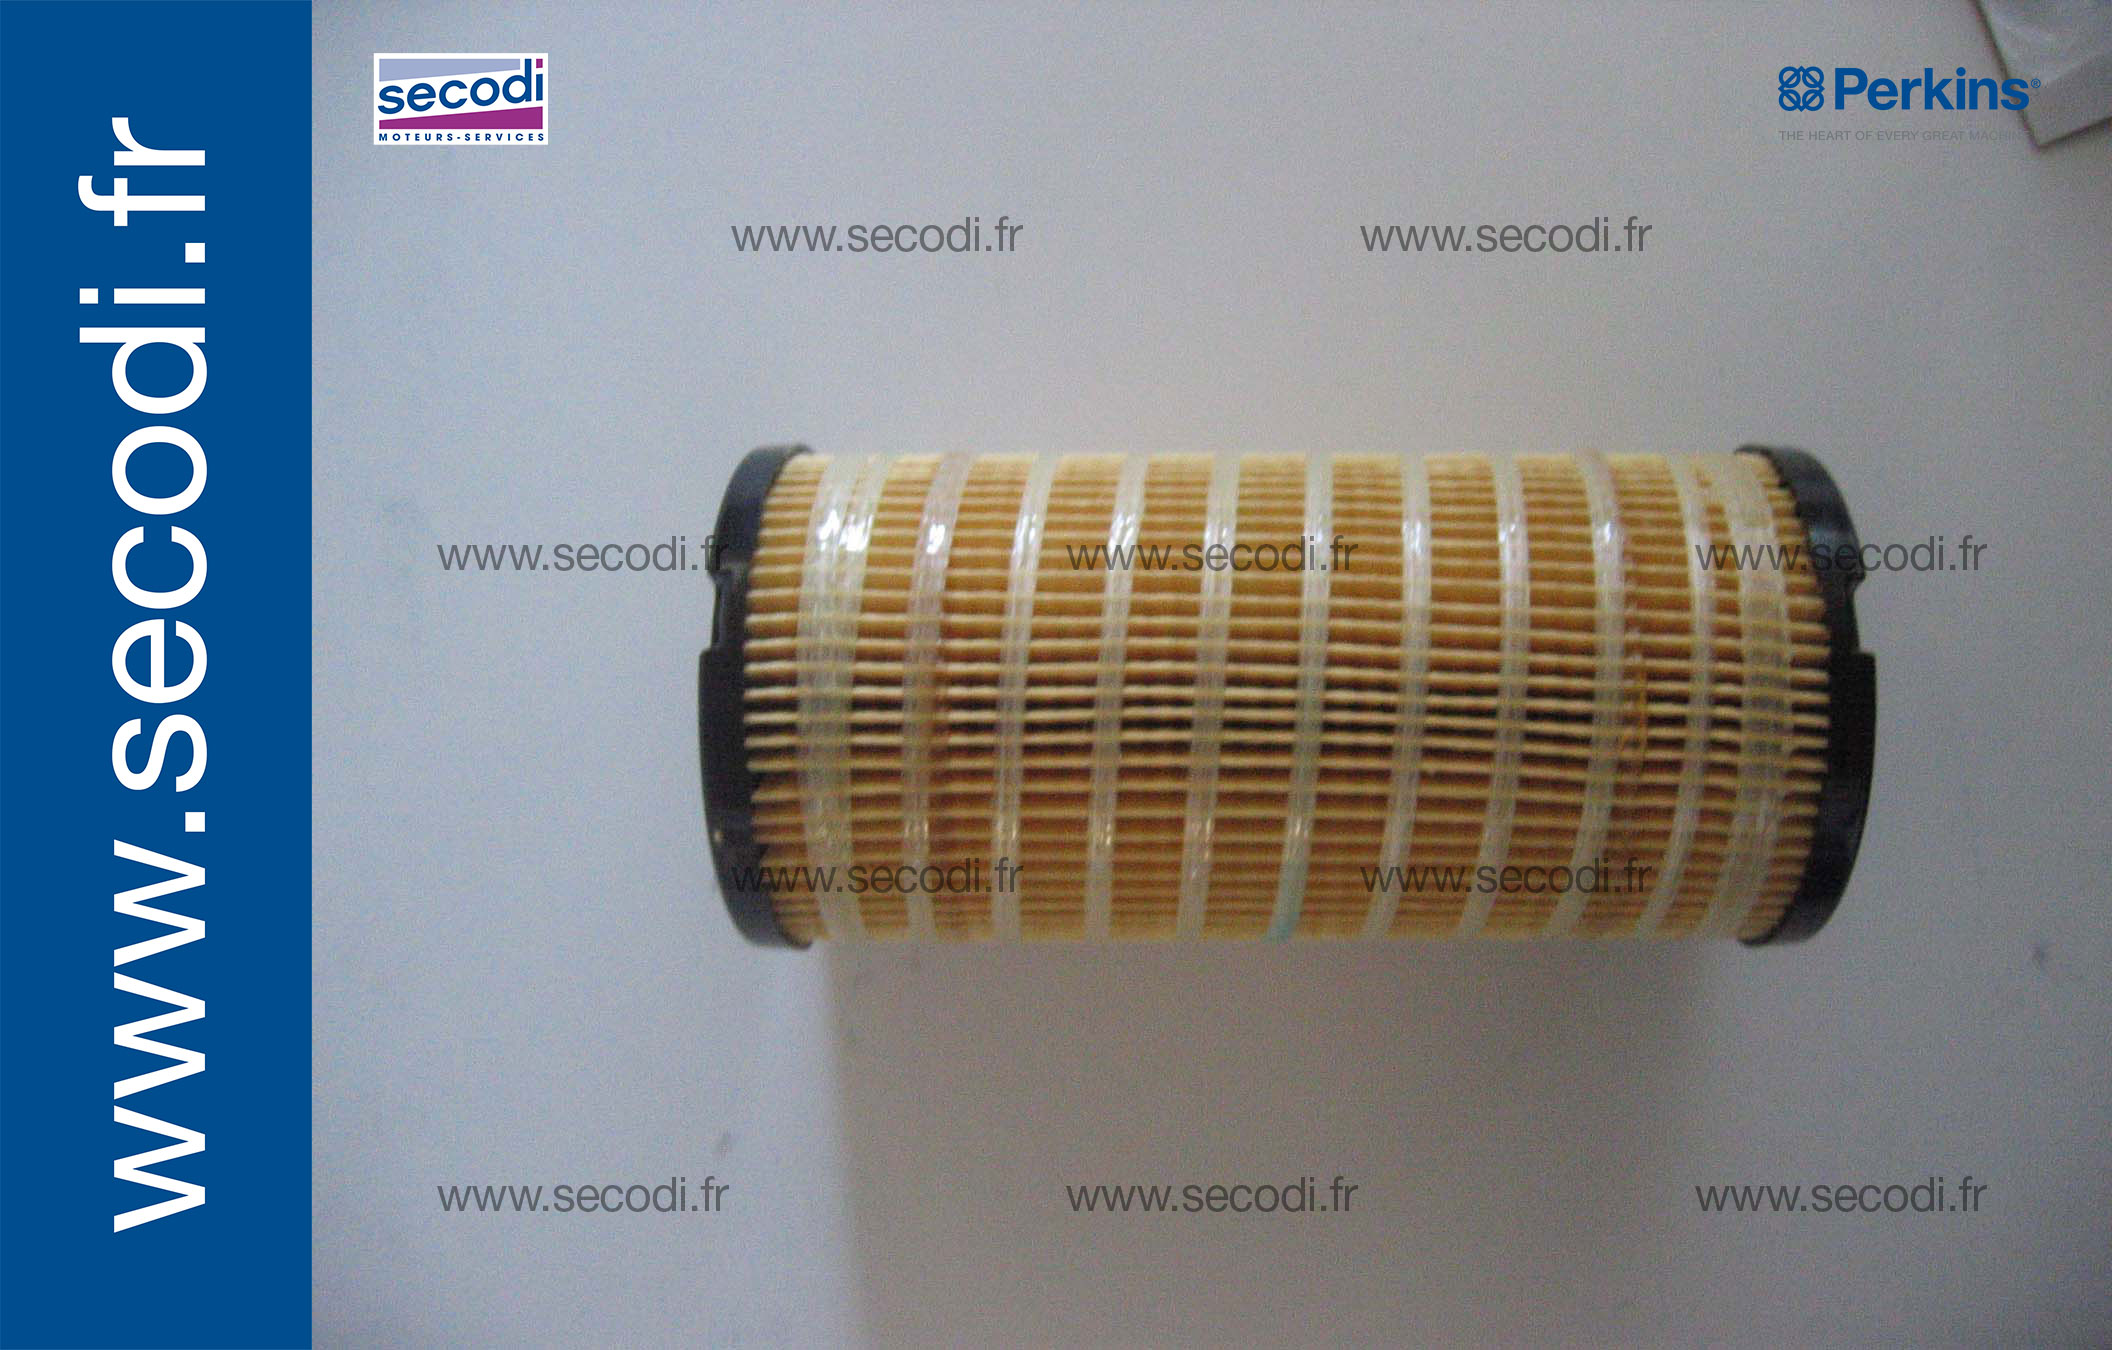 26560201 Fuel Filter Perkins 26560177 Mccormick Filters By Dimensions Zoom